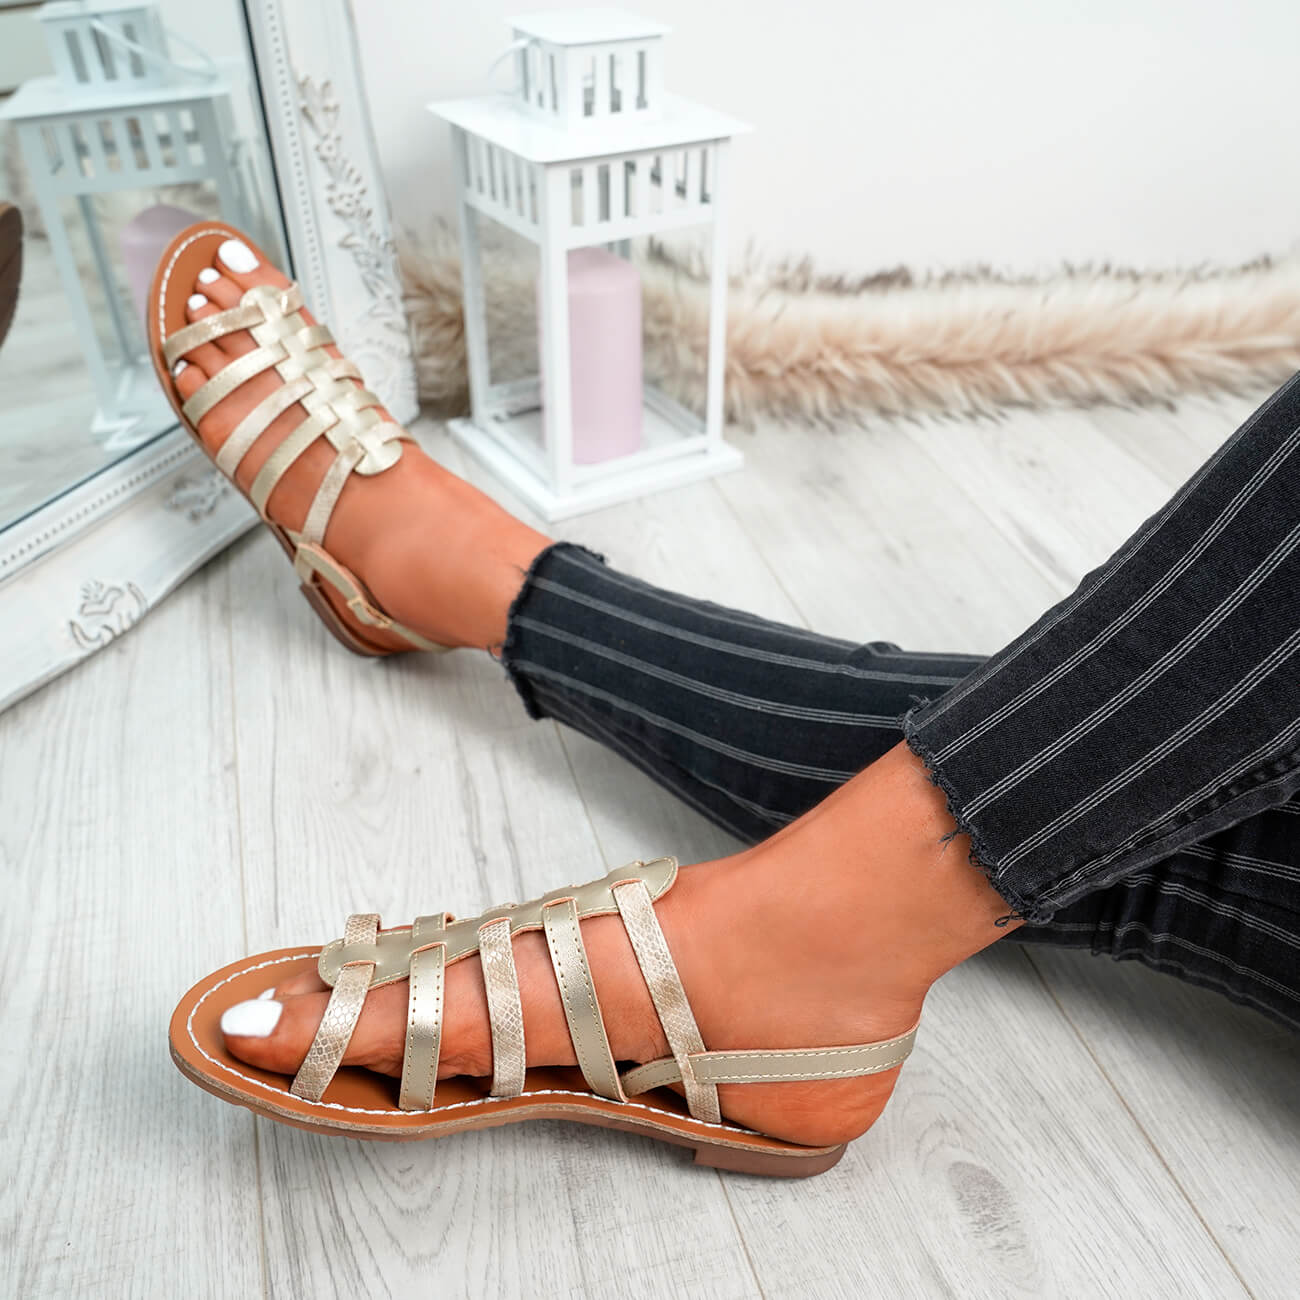 WOMENS-LADIES-BUCKLE-STRAP-FLAT-SUMMER-SANDALS-CASUAL-HOLIDAY-COMFY-SHOES-SIZE thumbnail 39